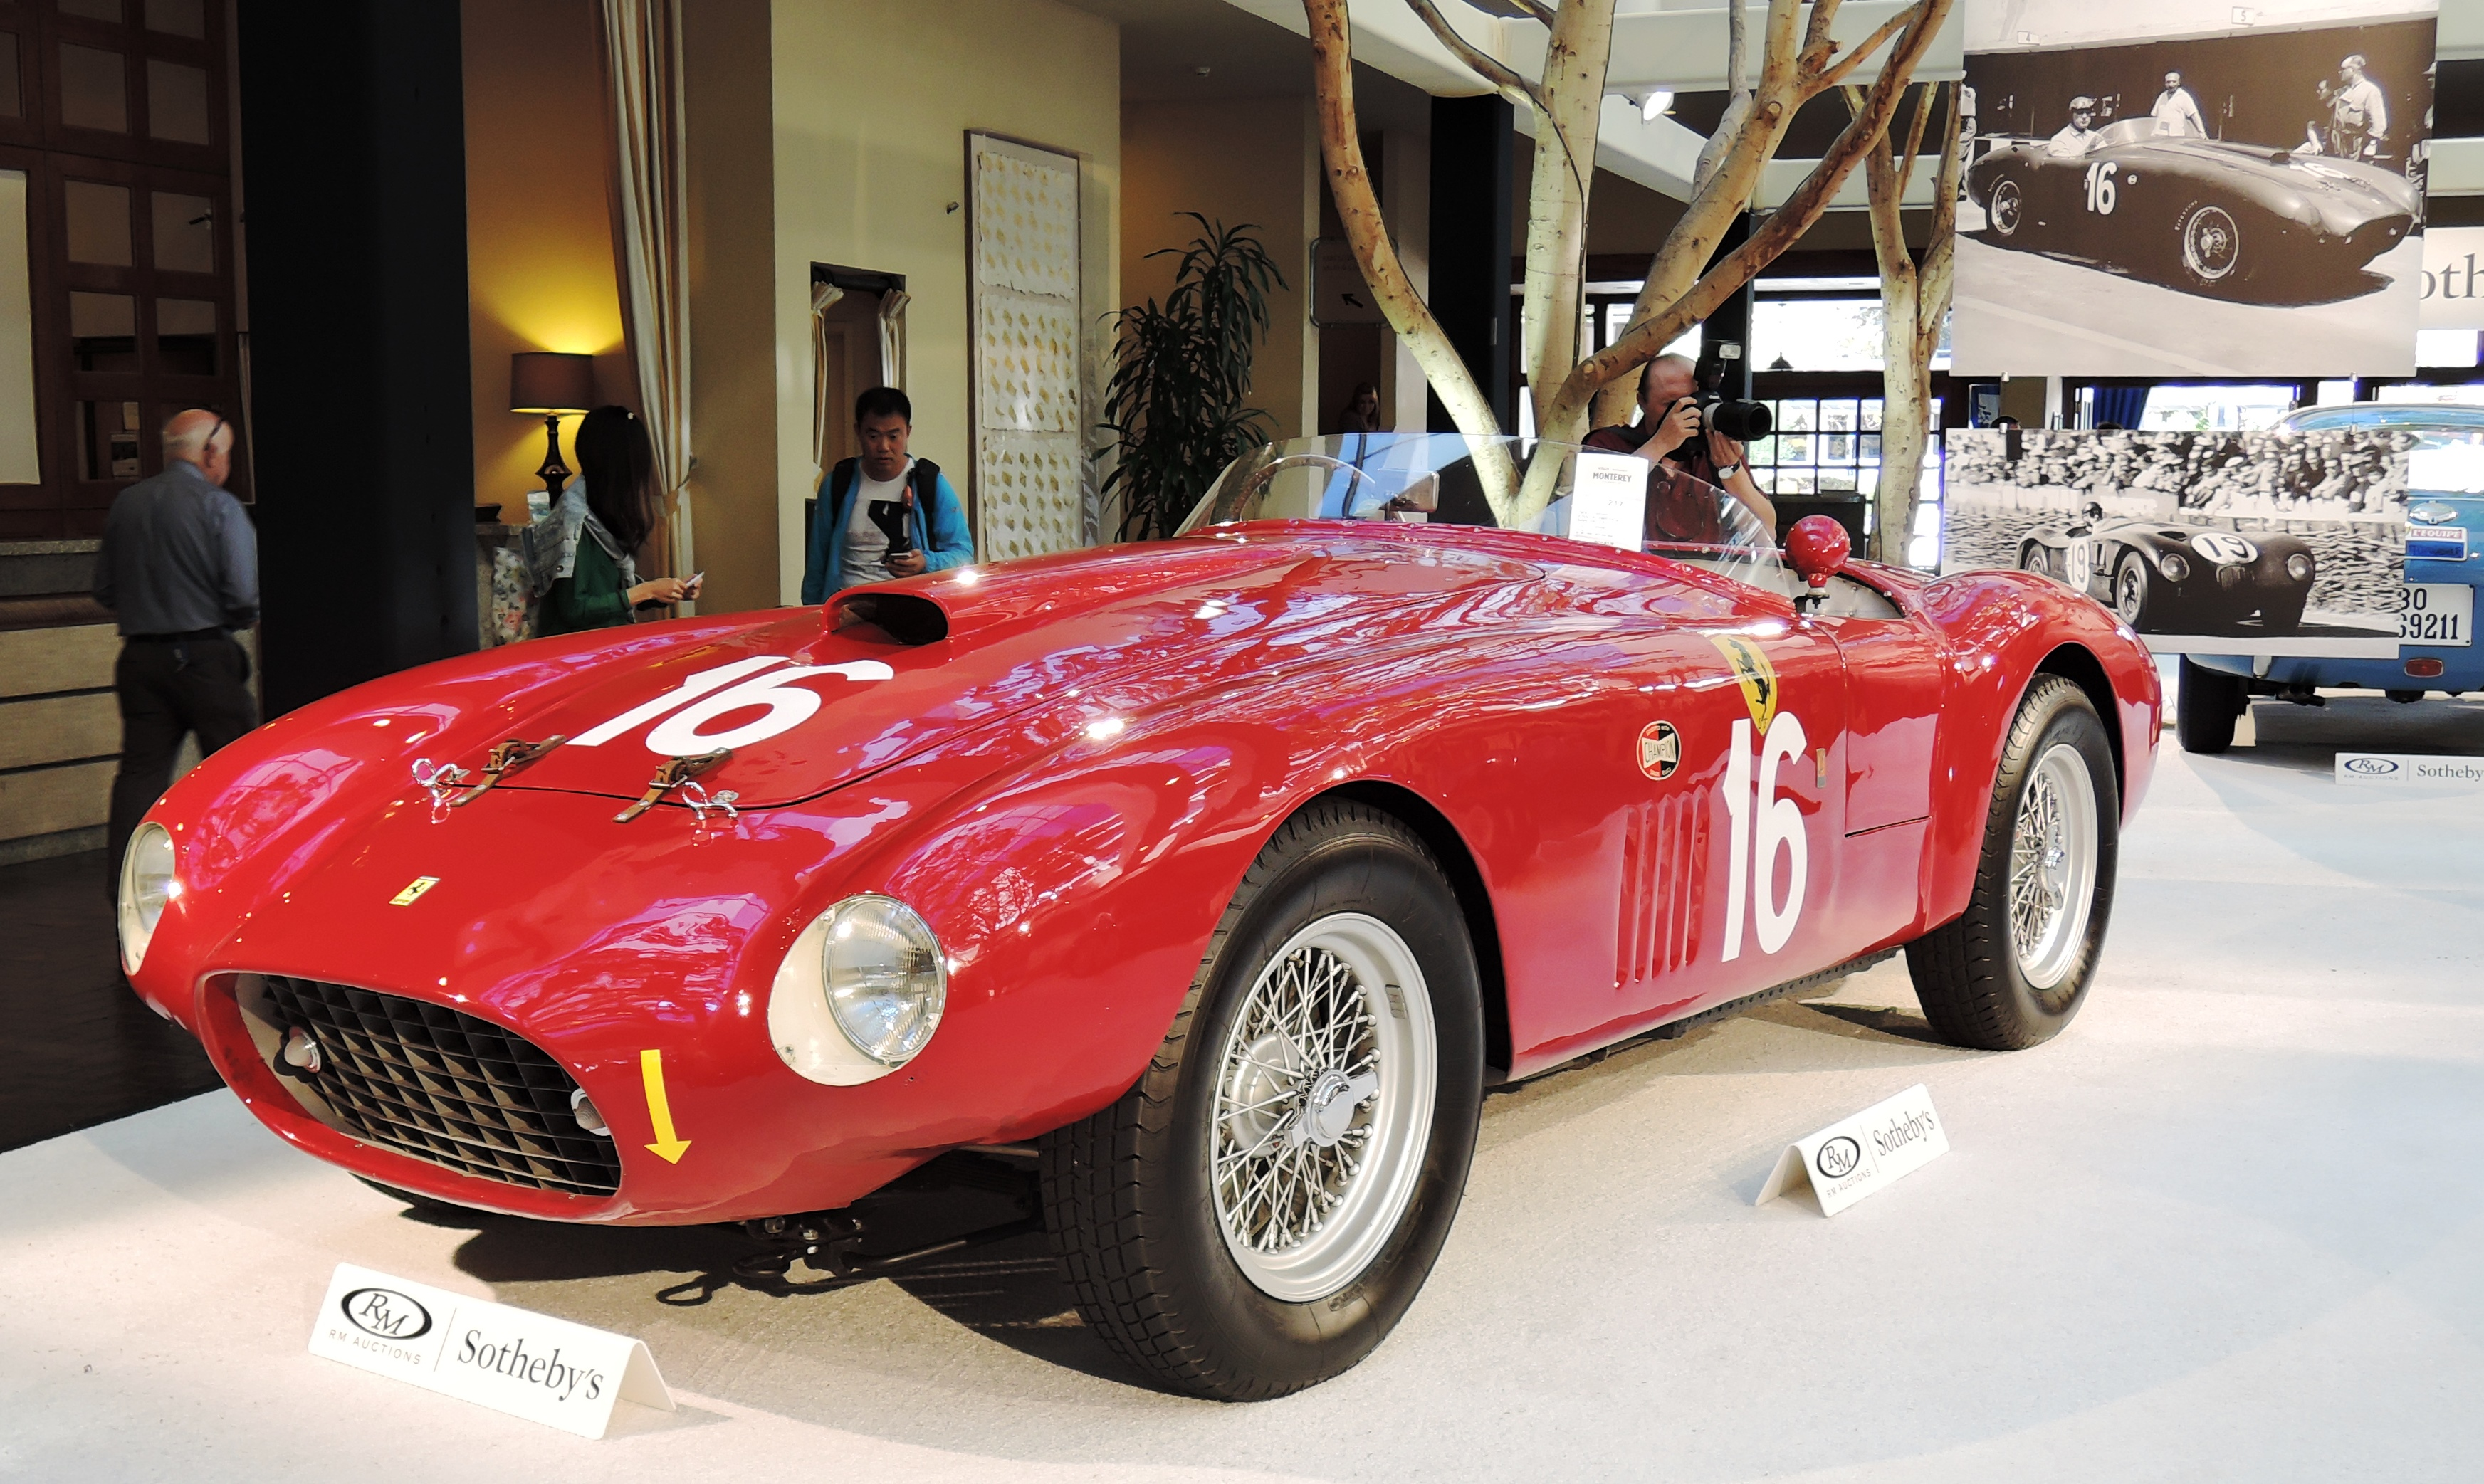 red 1950 Ferrari 275S/340 America Barchetta by Scaglietti - classic car auctions